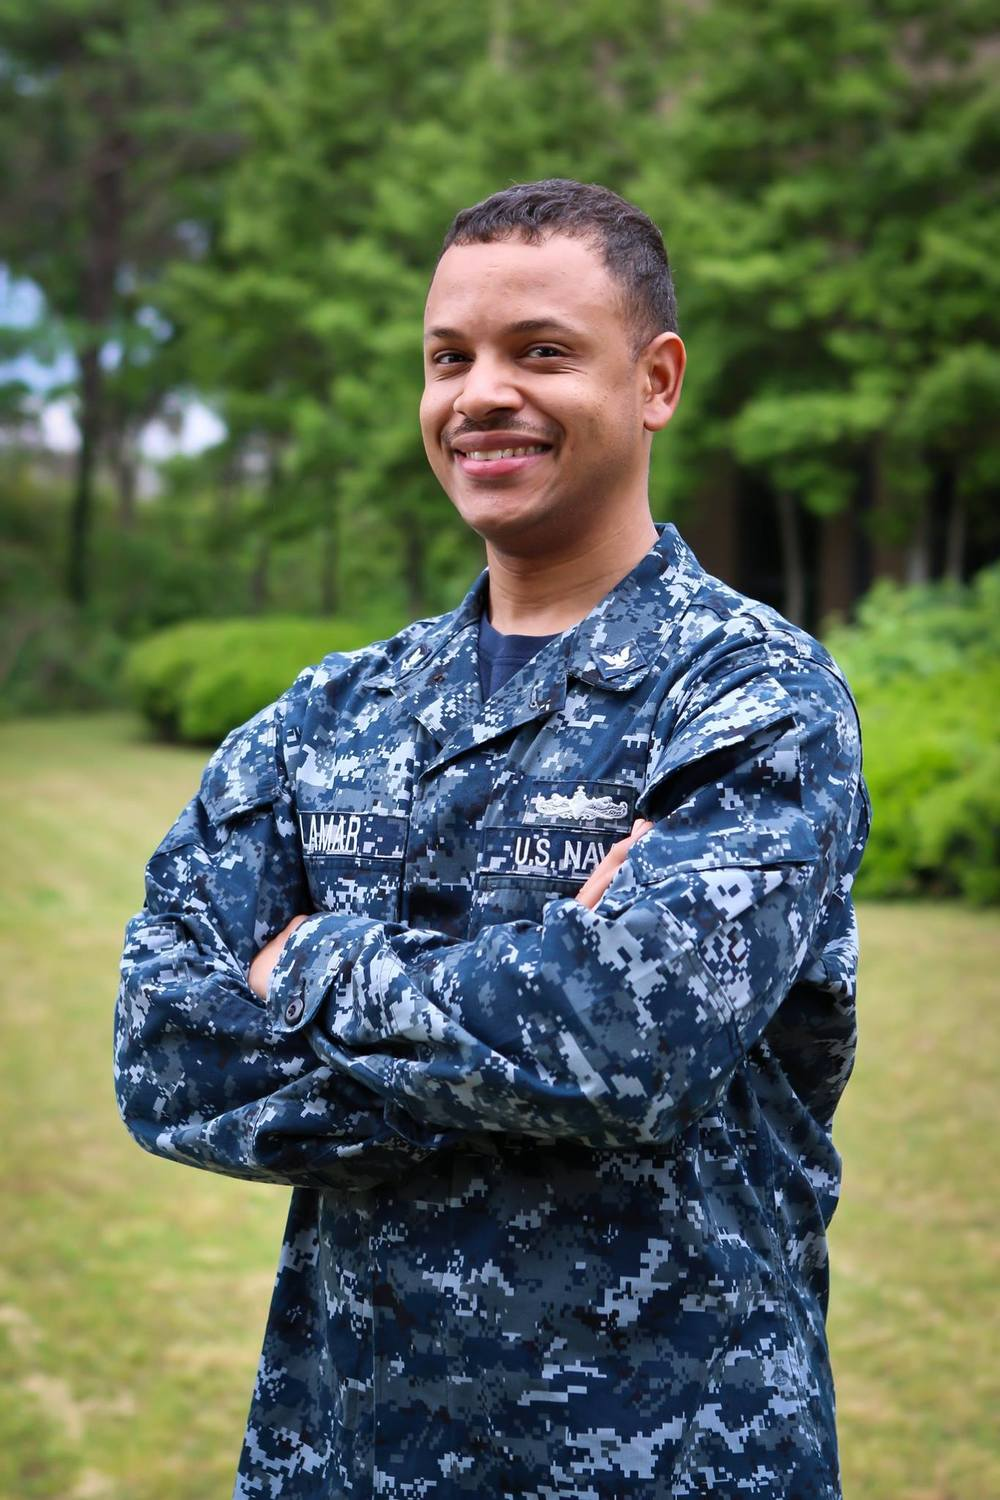 Petty Officer 3rd Class Mario Lamar